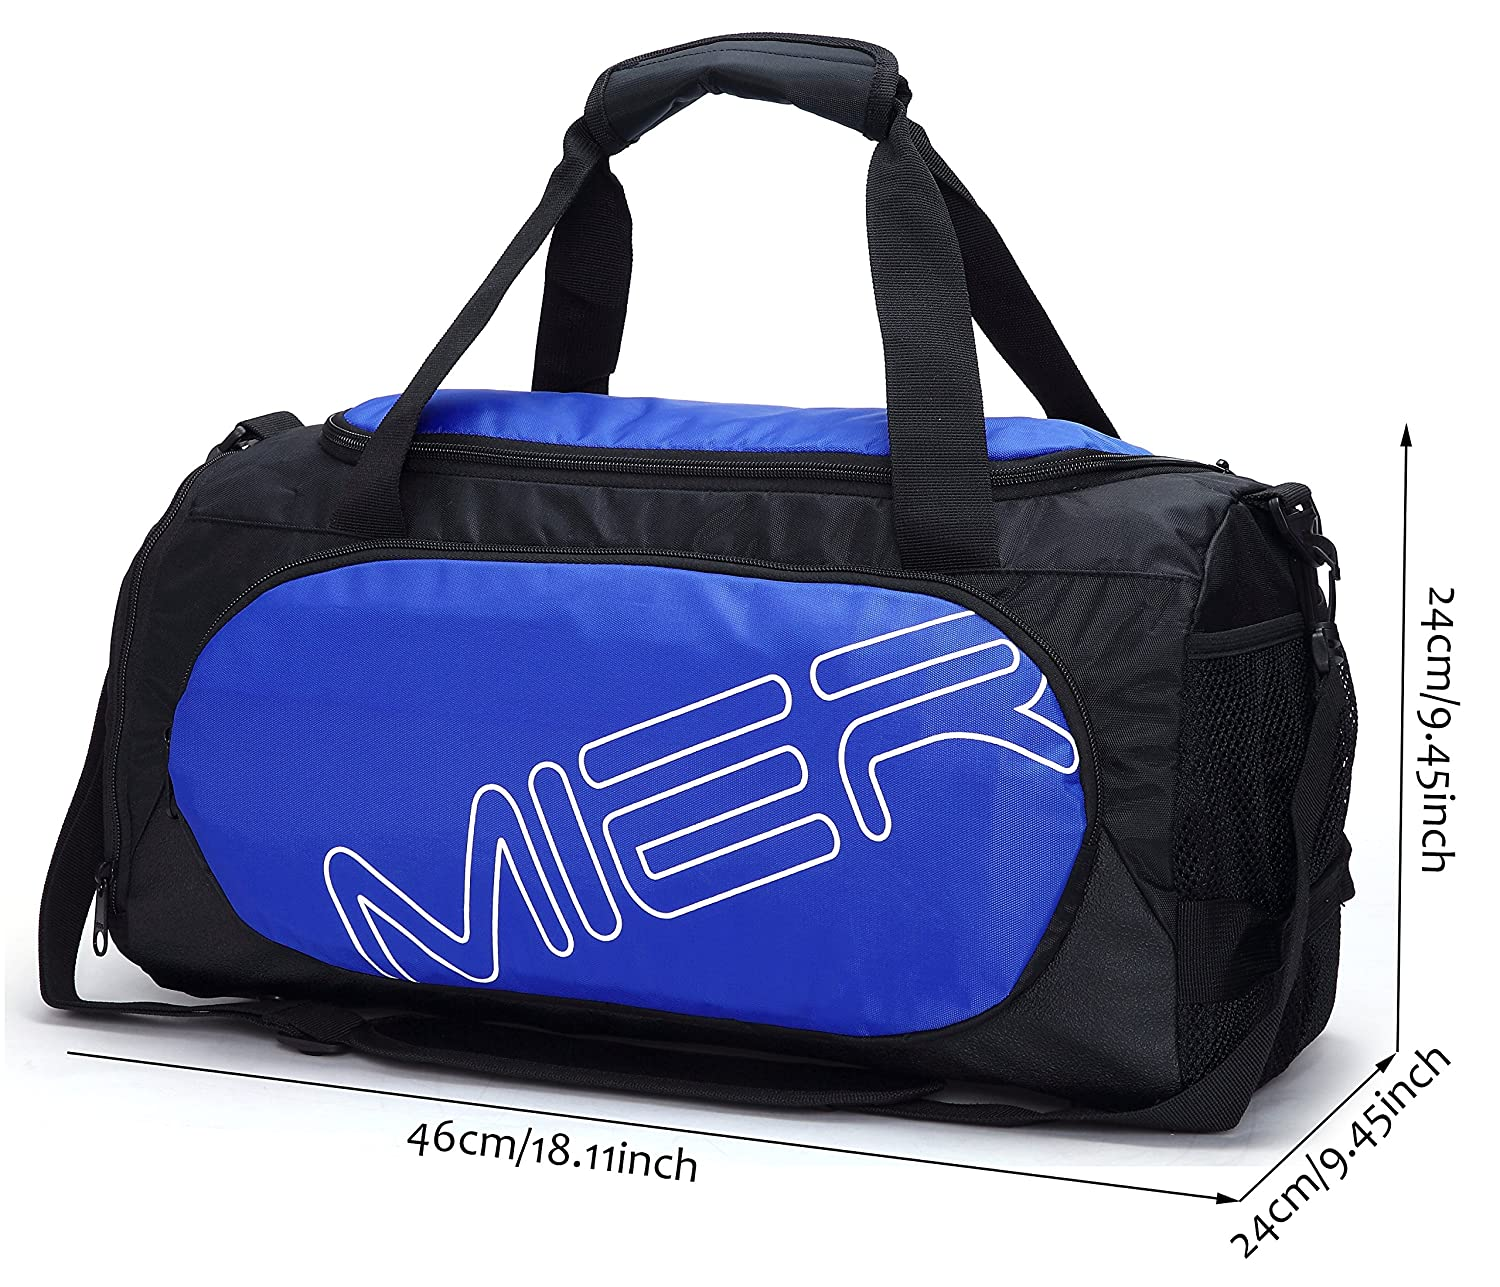 MIER Gym Bag Sports Duffel for Men and Women with Shoe Compartment ... 4a79a70184295